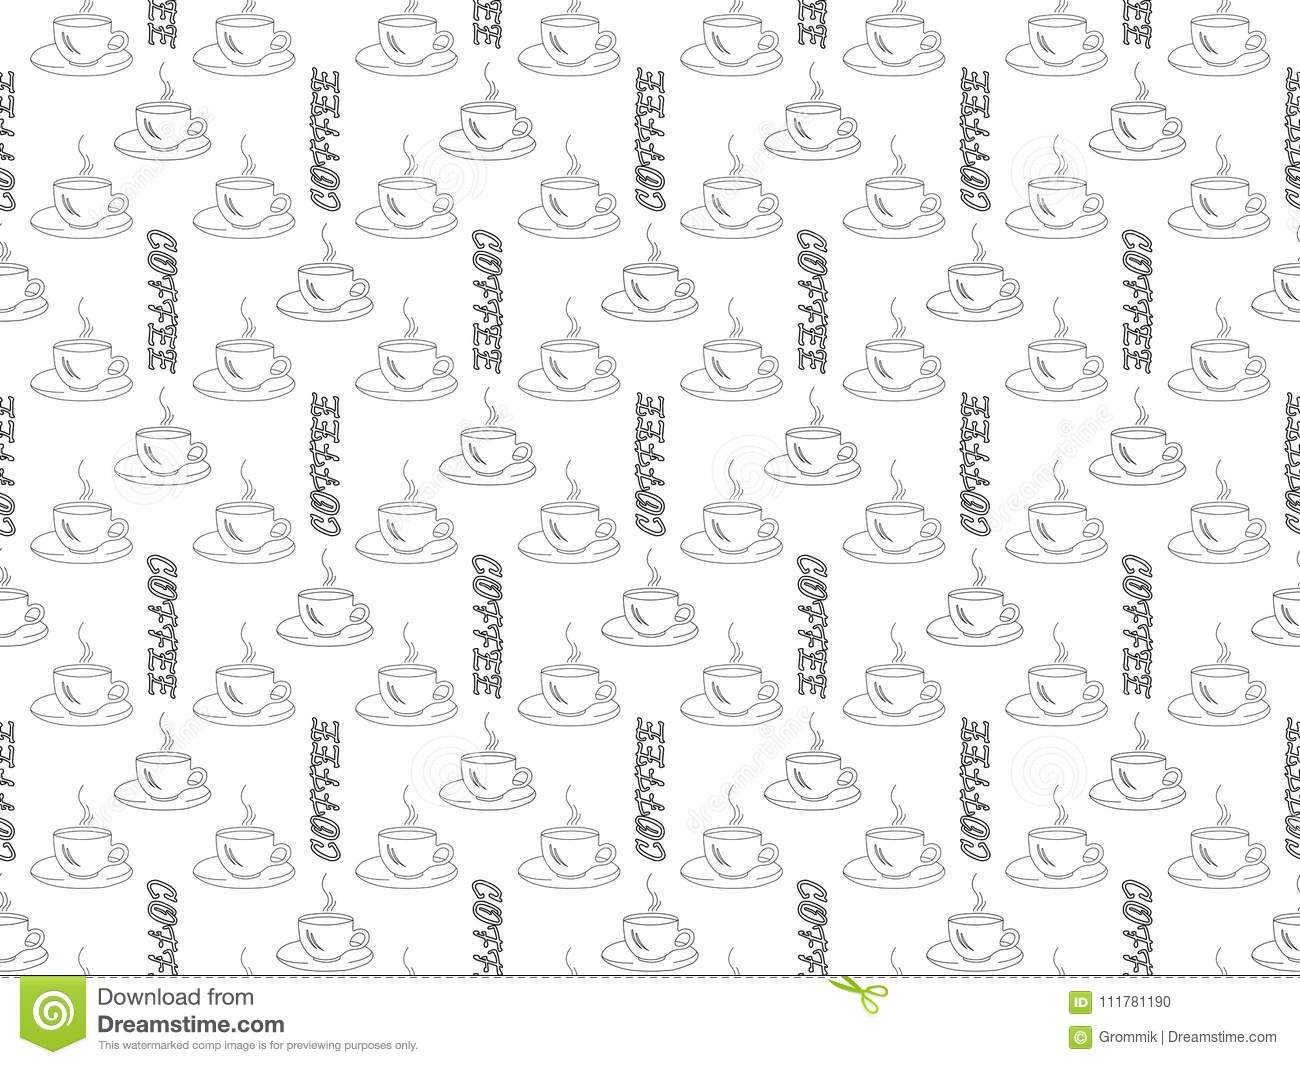 White background black outline of coffee cups and word coffee, s